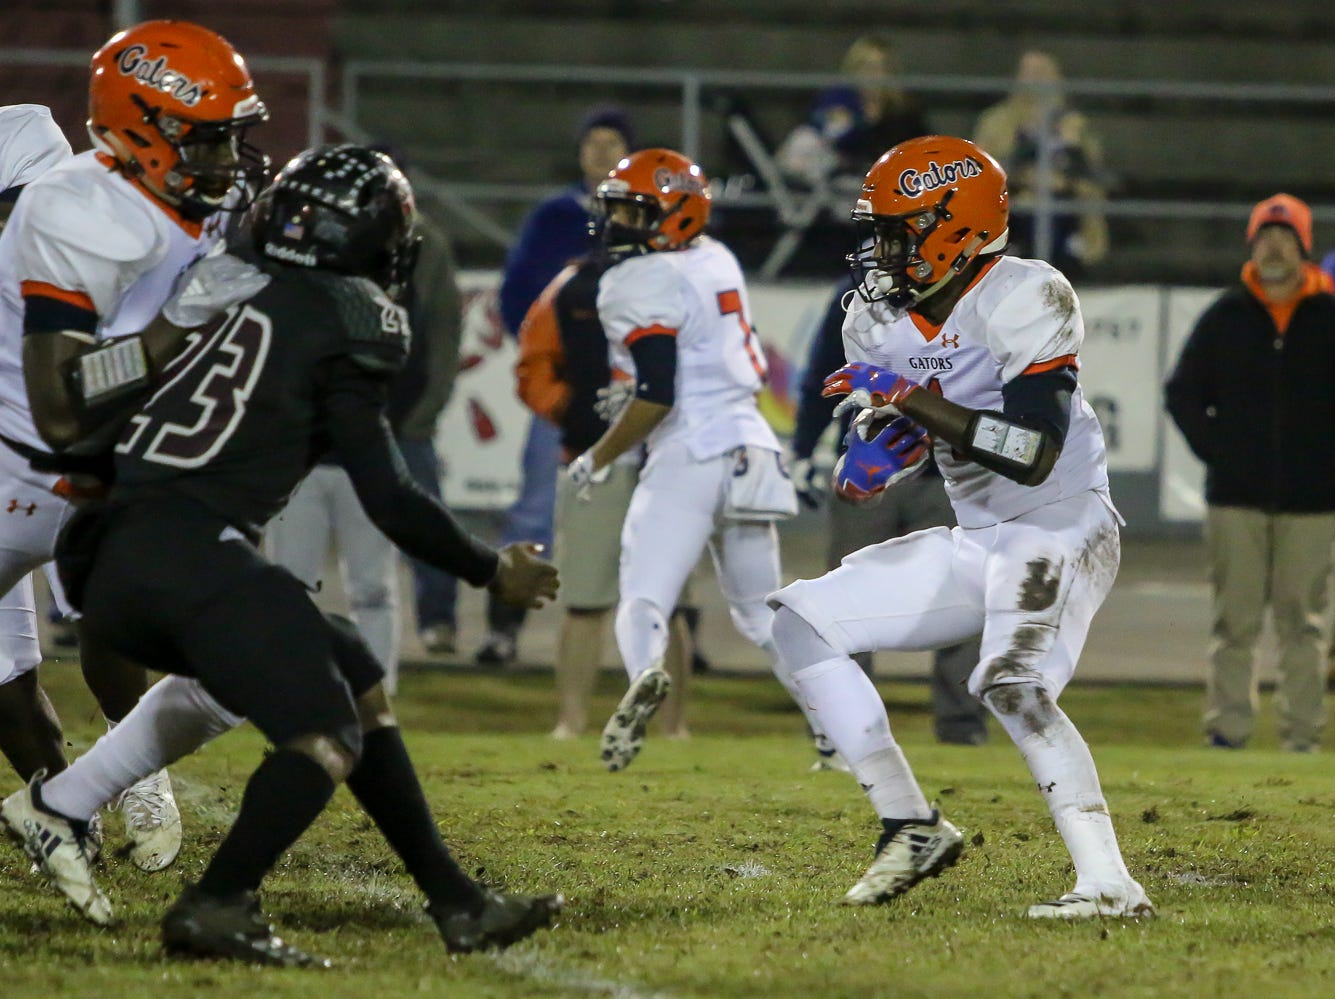 Escambia running back Frank Peasent (1) tries to find an opening to run through against Navarre in the Region 1-6A Semifinal game at Navarre High School on Friday, November 16, 2018.